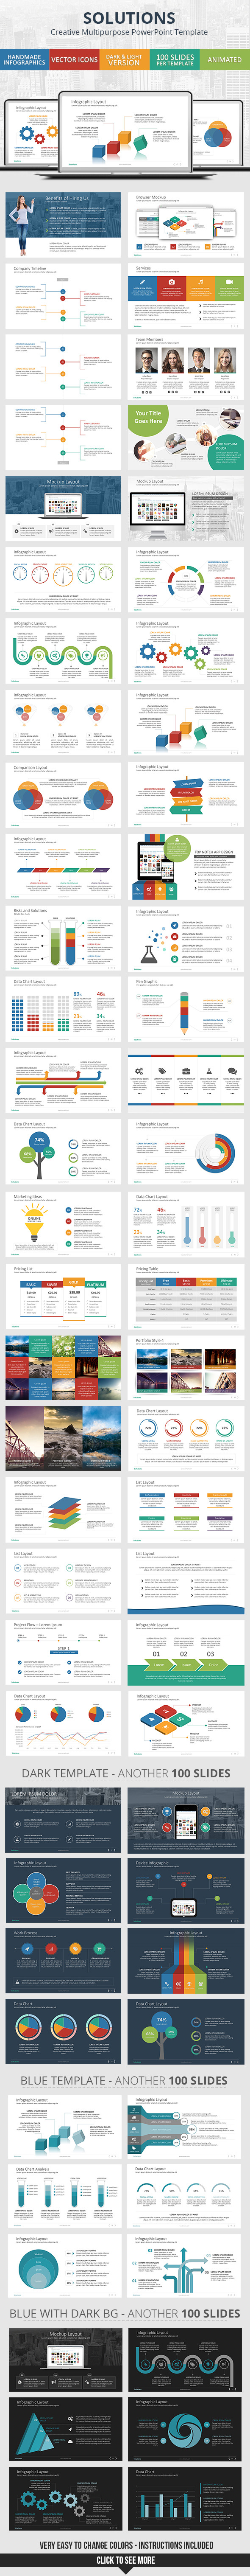 GraphicRiver Solutions PowerPoint Presentation Template 10284842